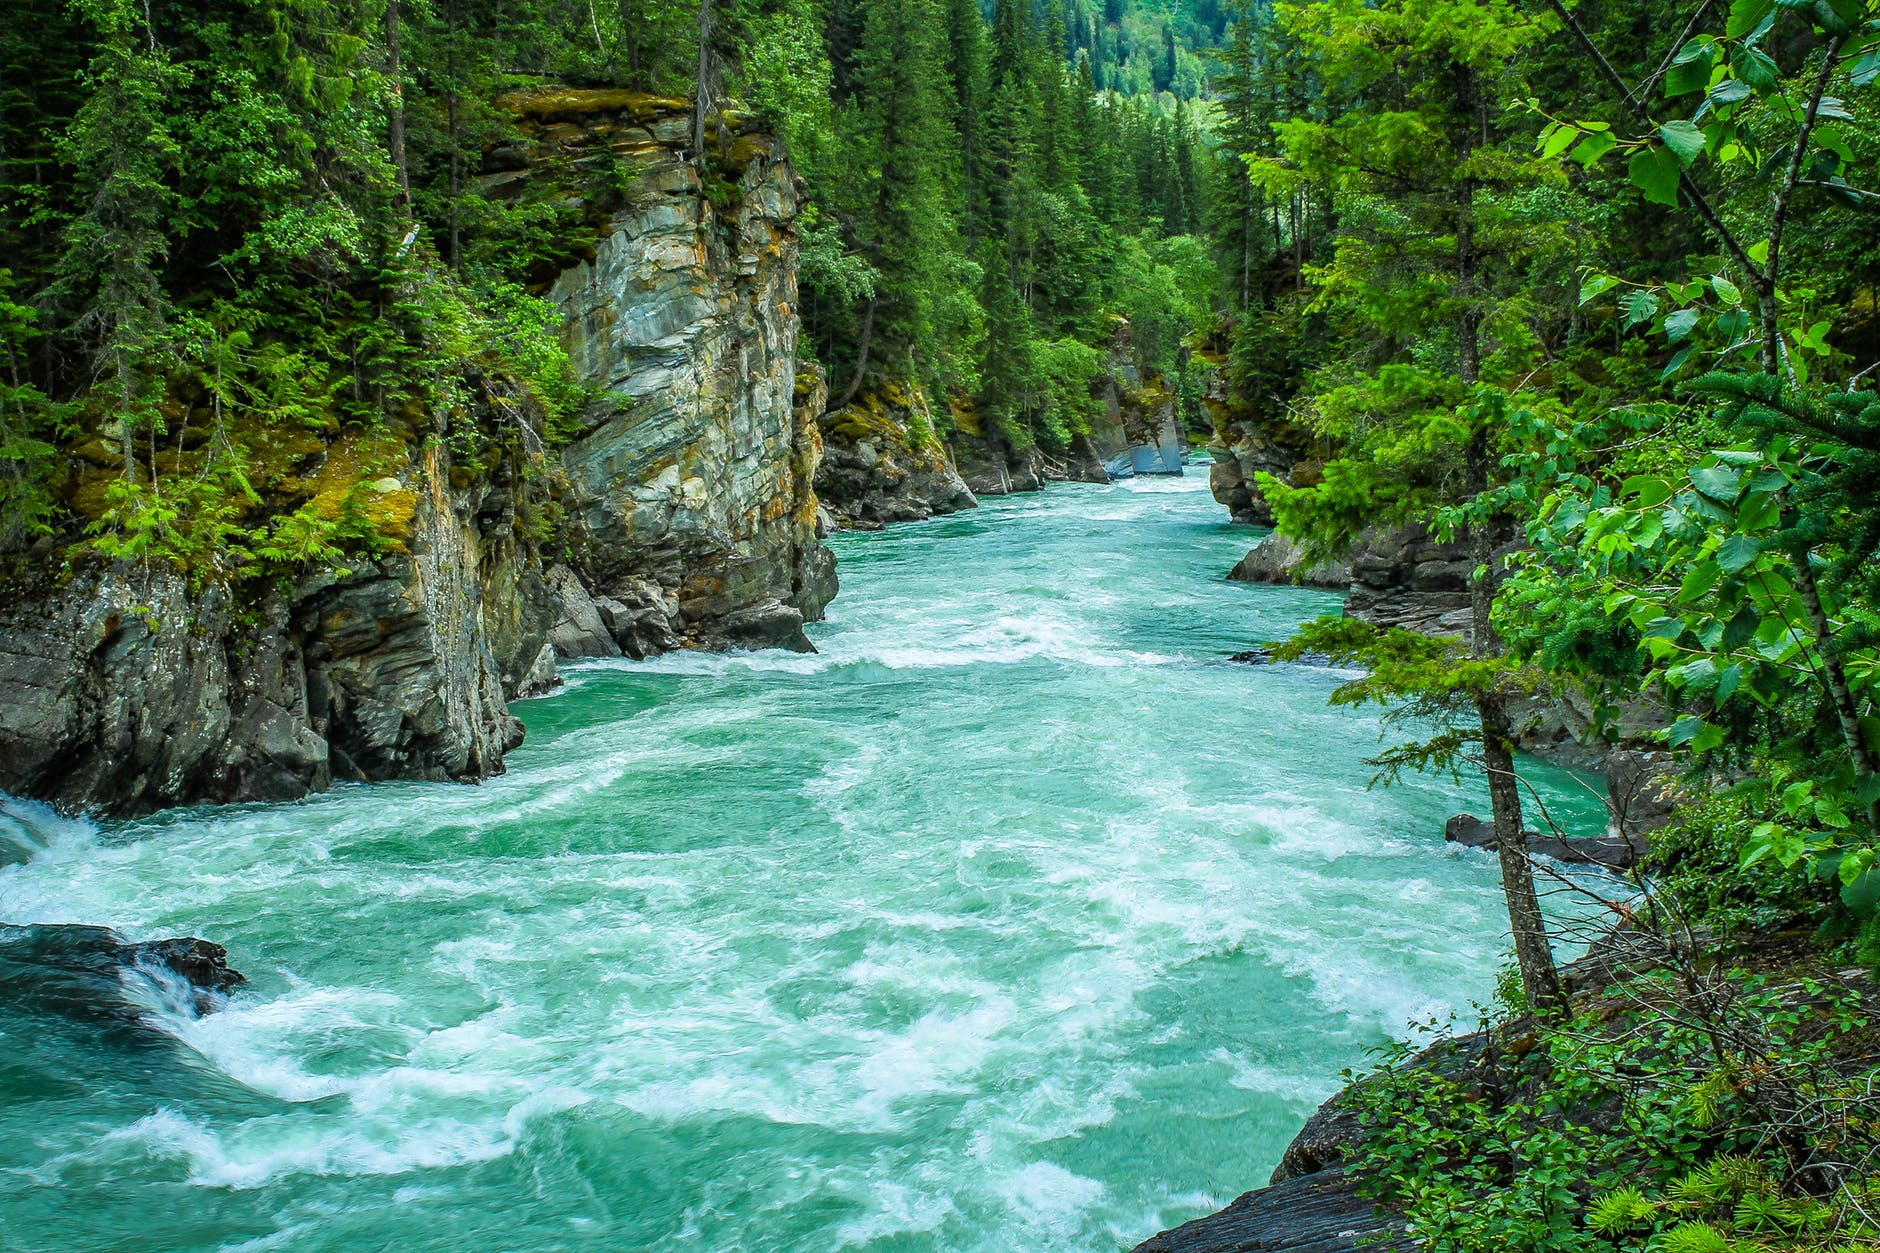 river between green leafed tree